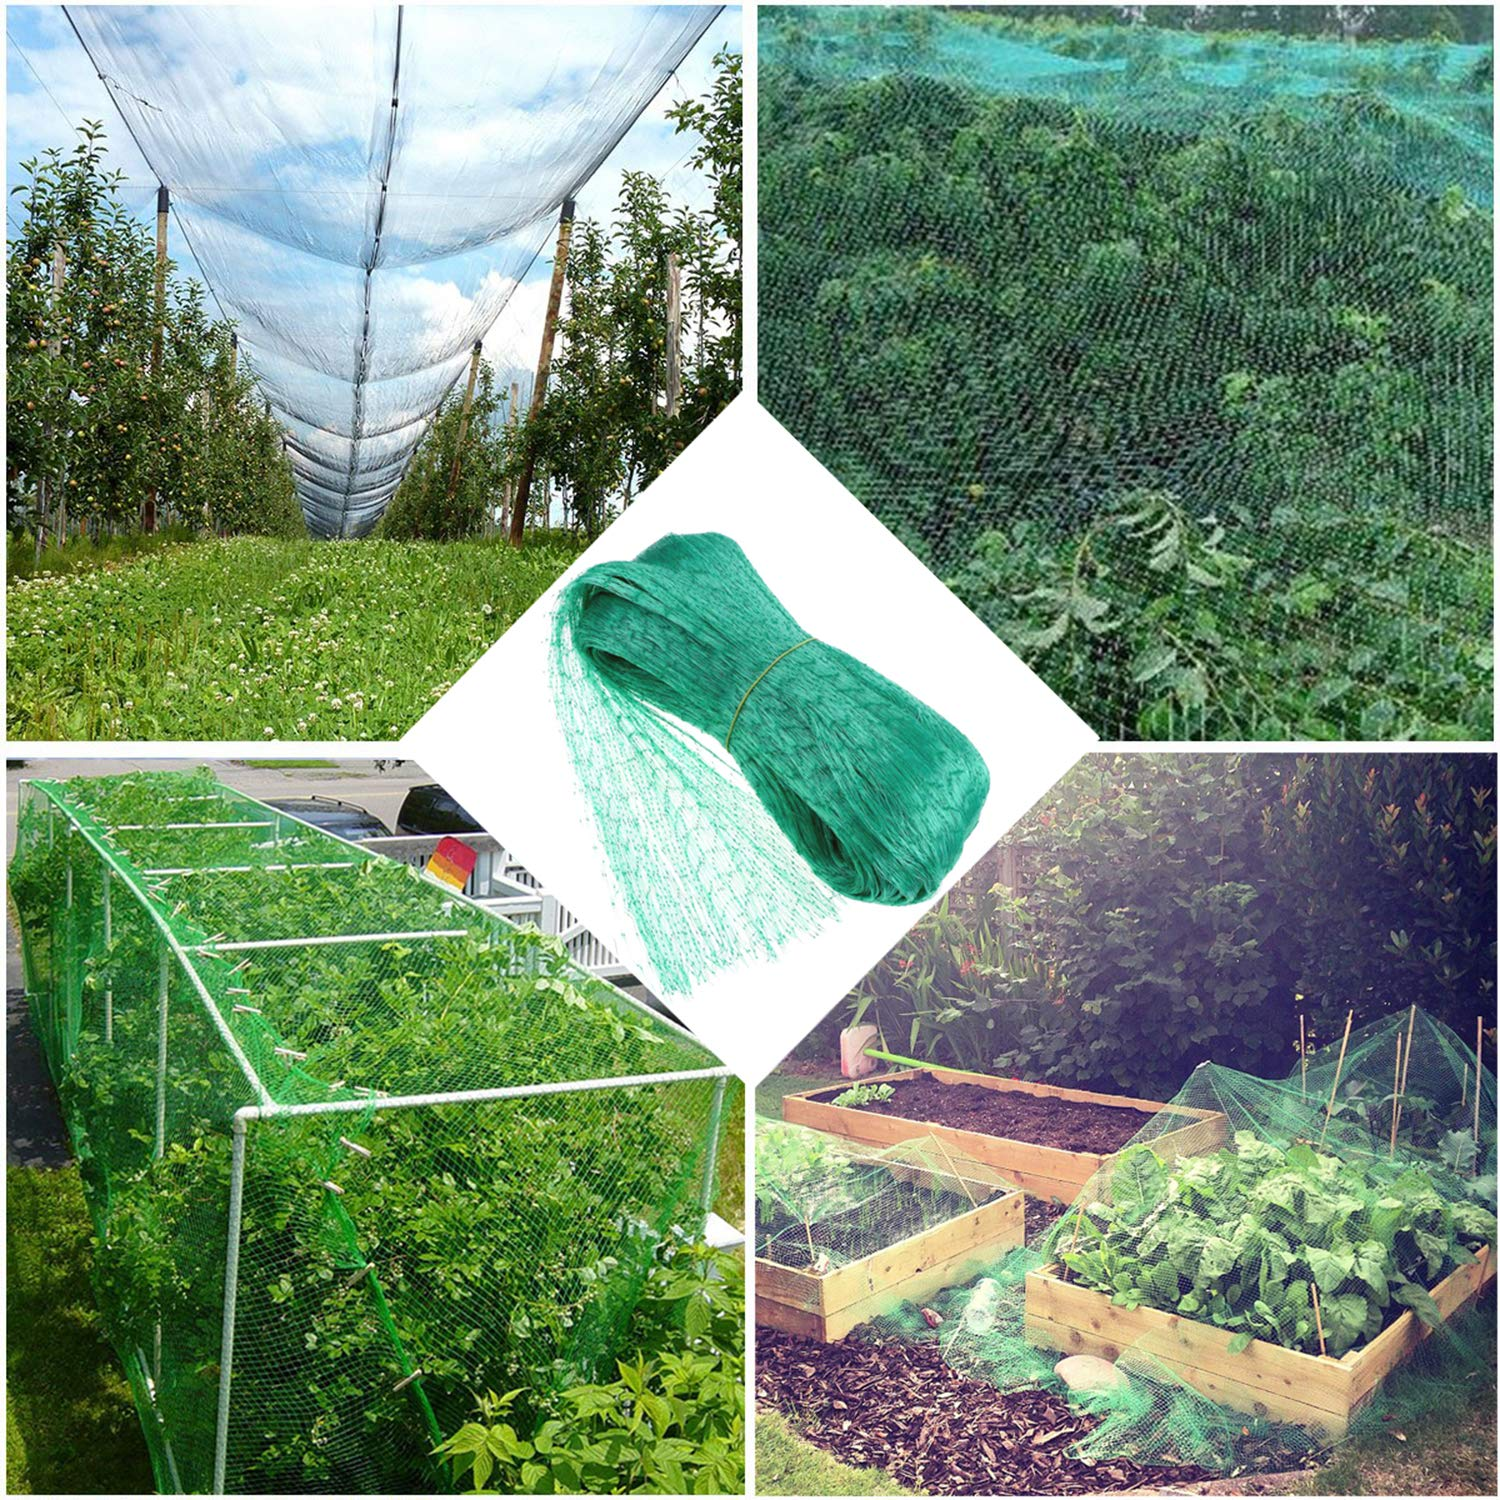 Shopping Garden 1 Green Anti Bird Mesh Garden Netting Protect Plant, g